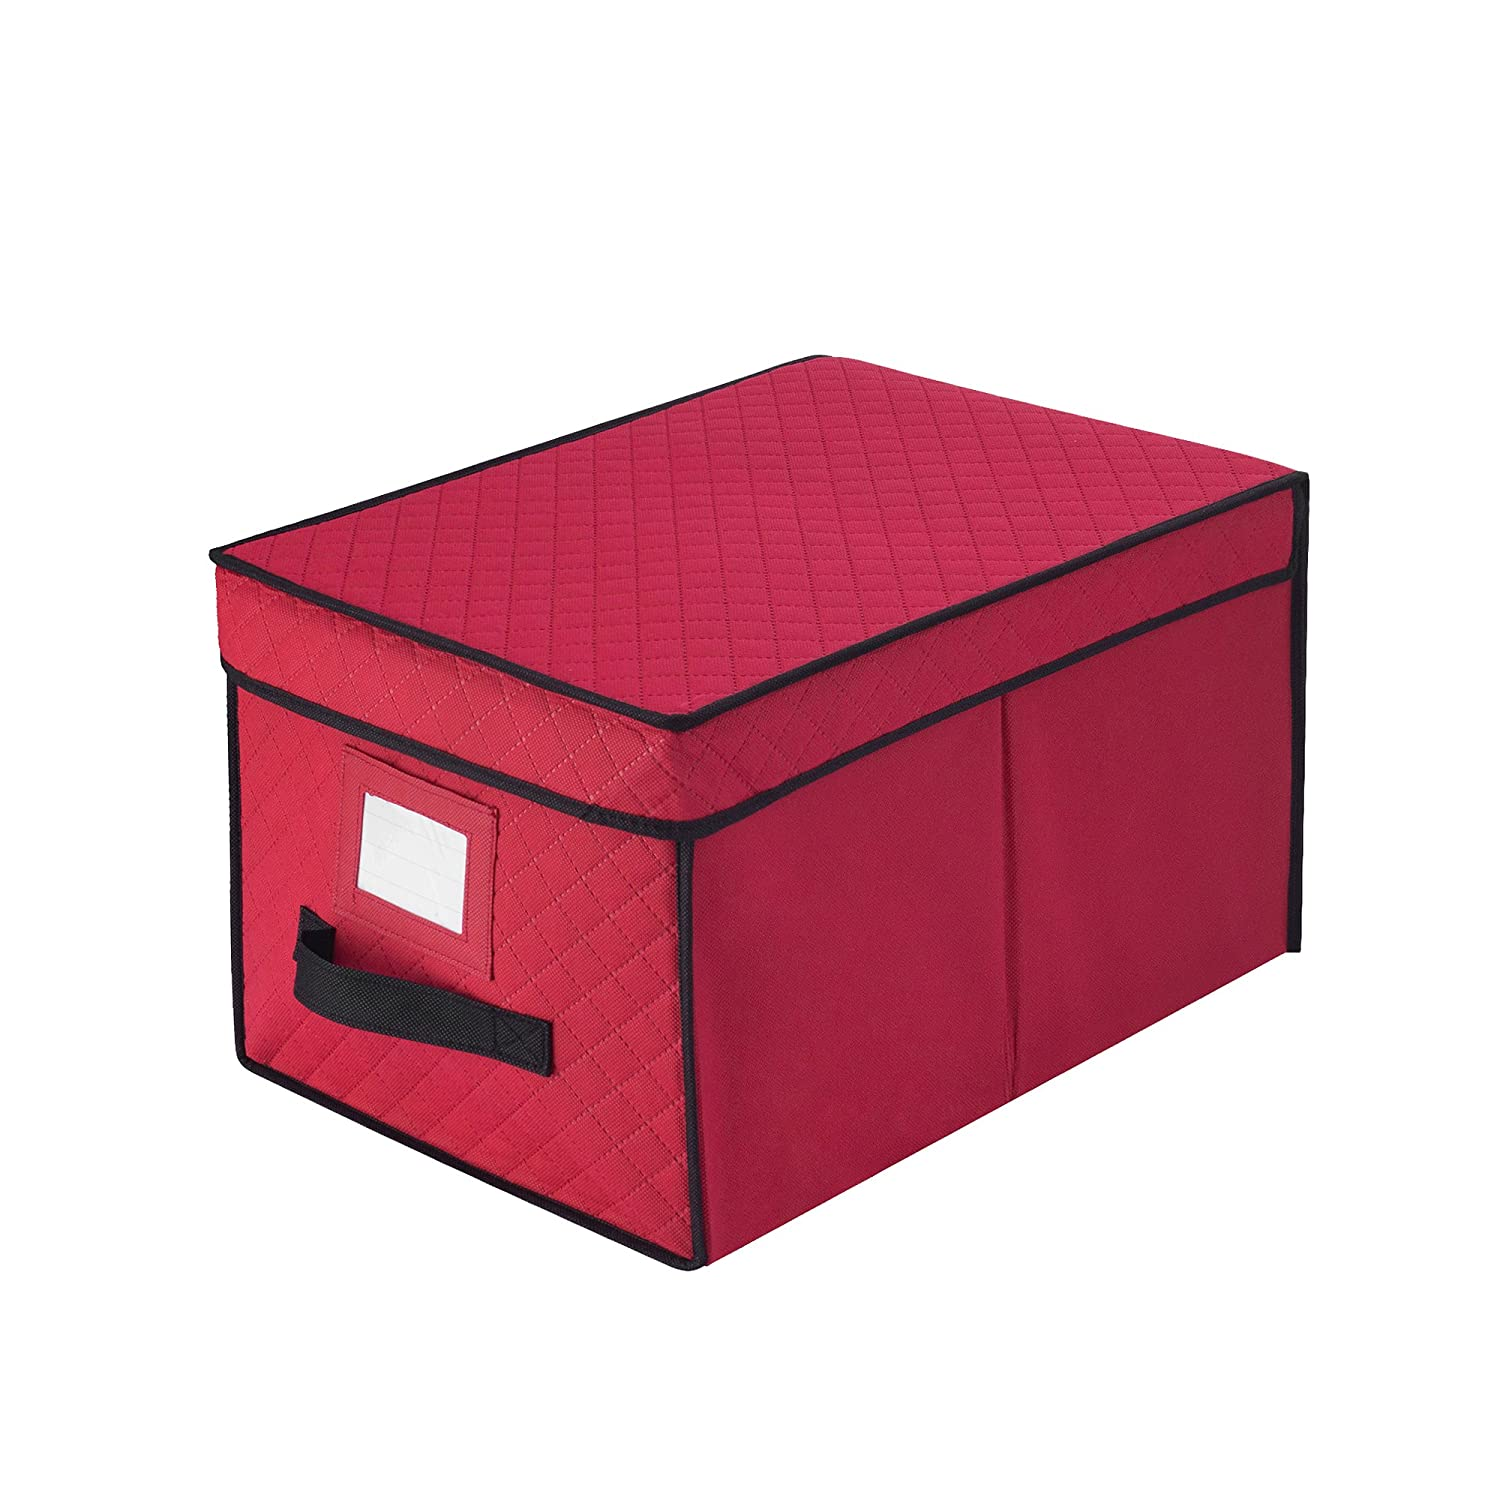 Elf Stor 5068 Ornament Red Christmas Strand Storage Box Organizes Over 400 Ft. of Lights, Reel DTX International 83-DT5515